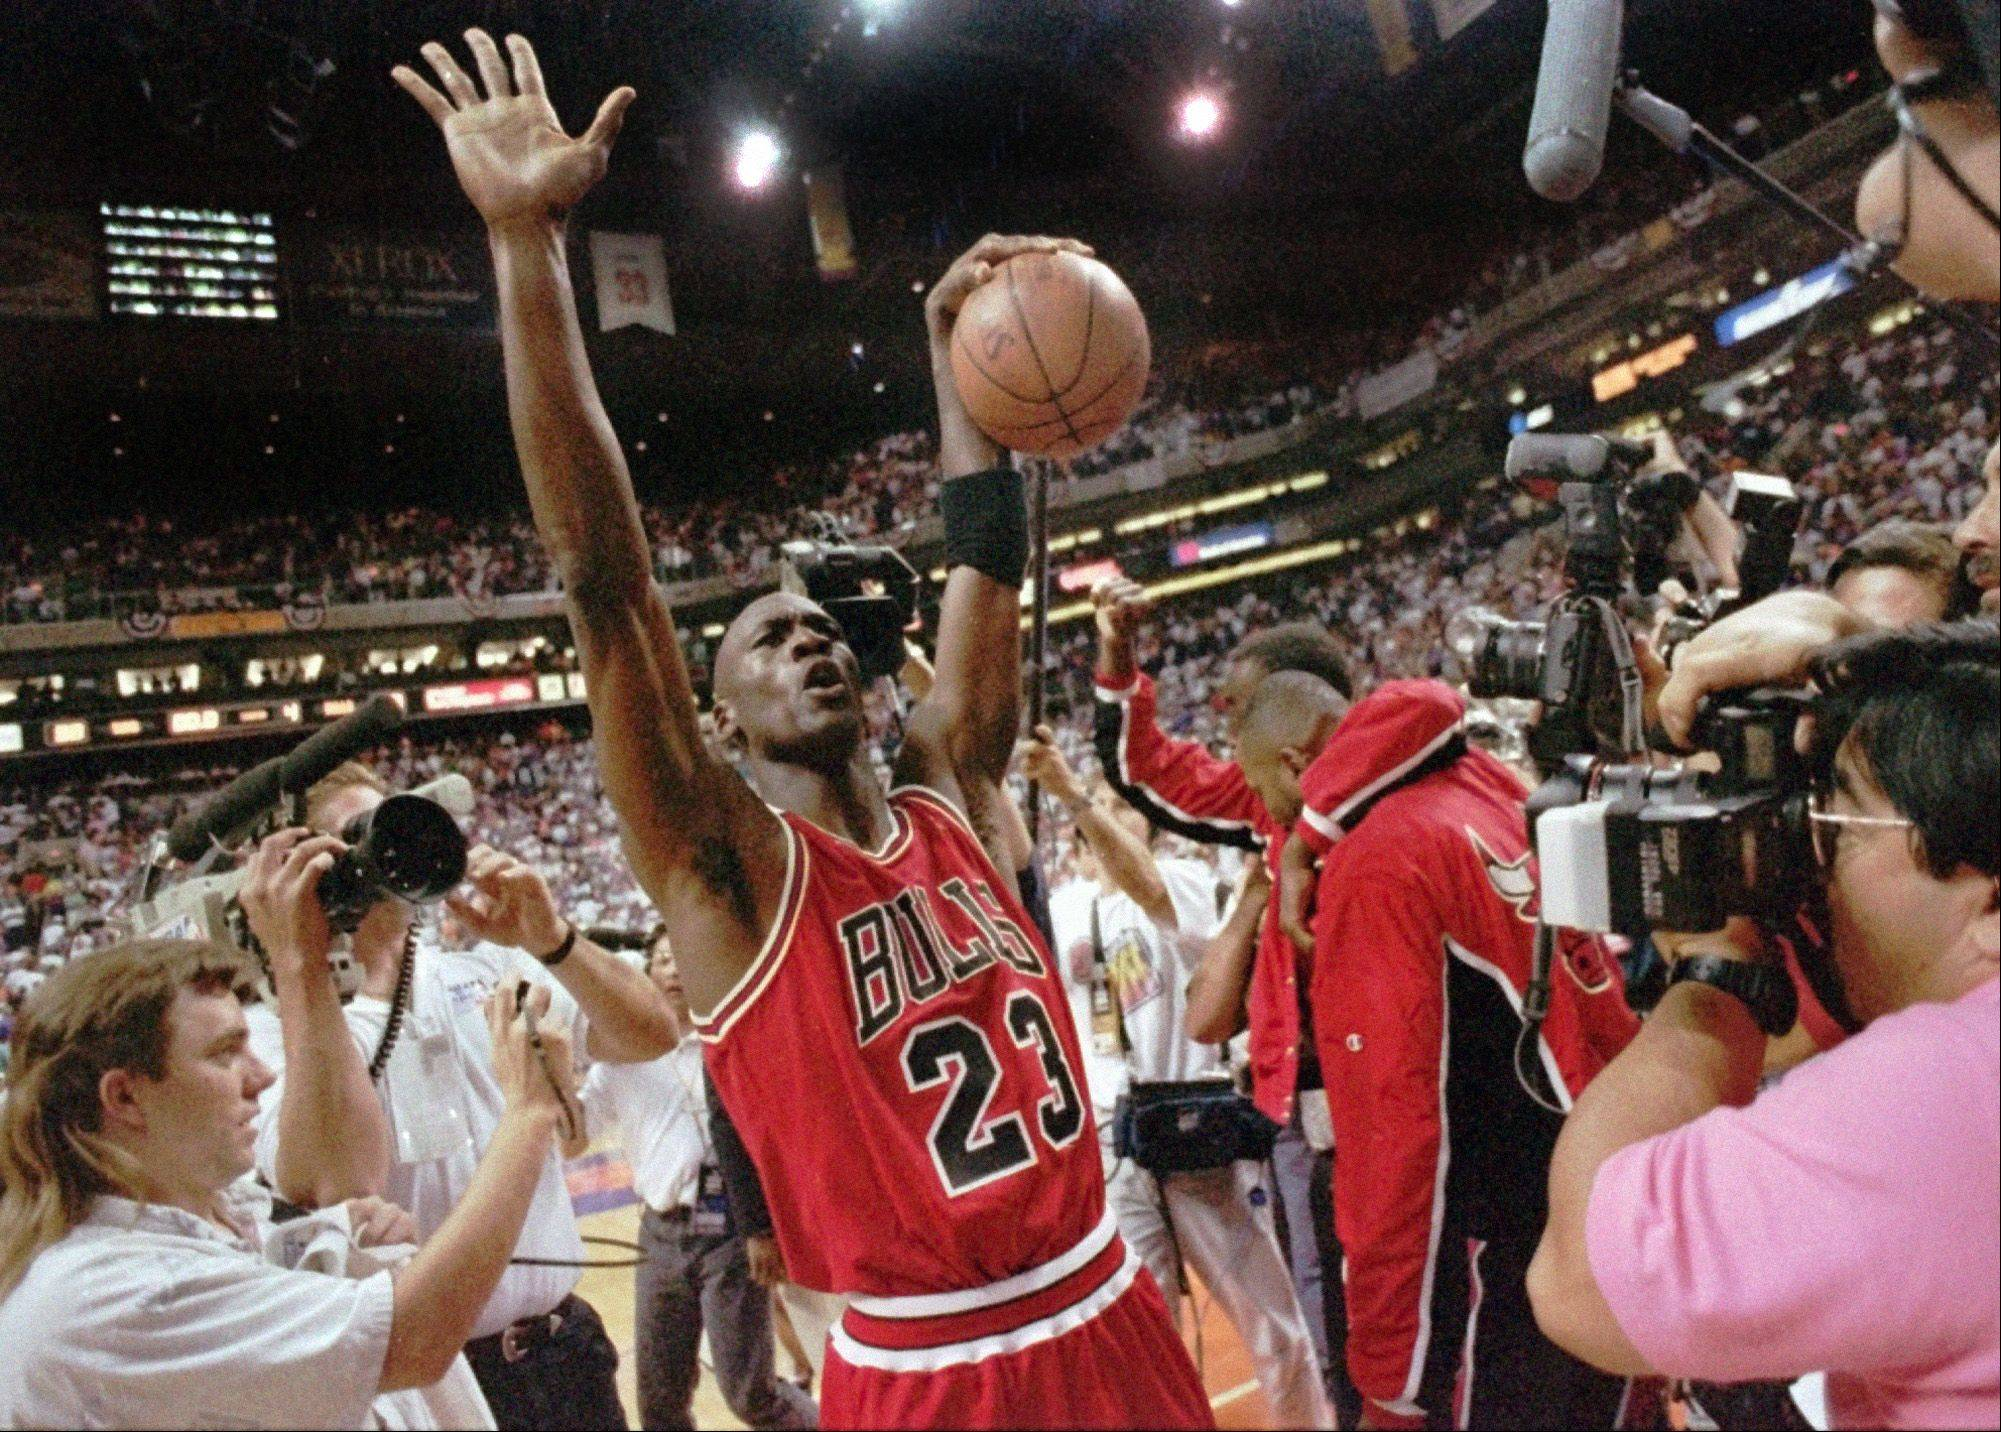 Michael Jordan celebrates after the Bulls beat the Phoenix Suns 99-98 to win their third consecutive NBA title in Phoenix, June 20, 1993. Jordan scored 33 points and gained the record for the highest scoring average in finals history, 41.0.